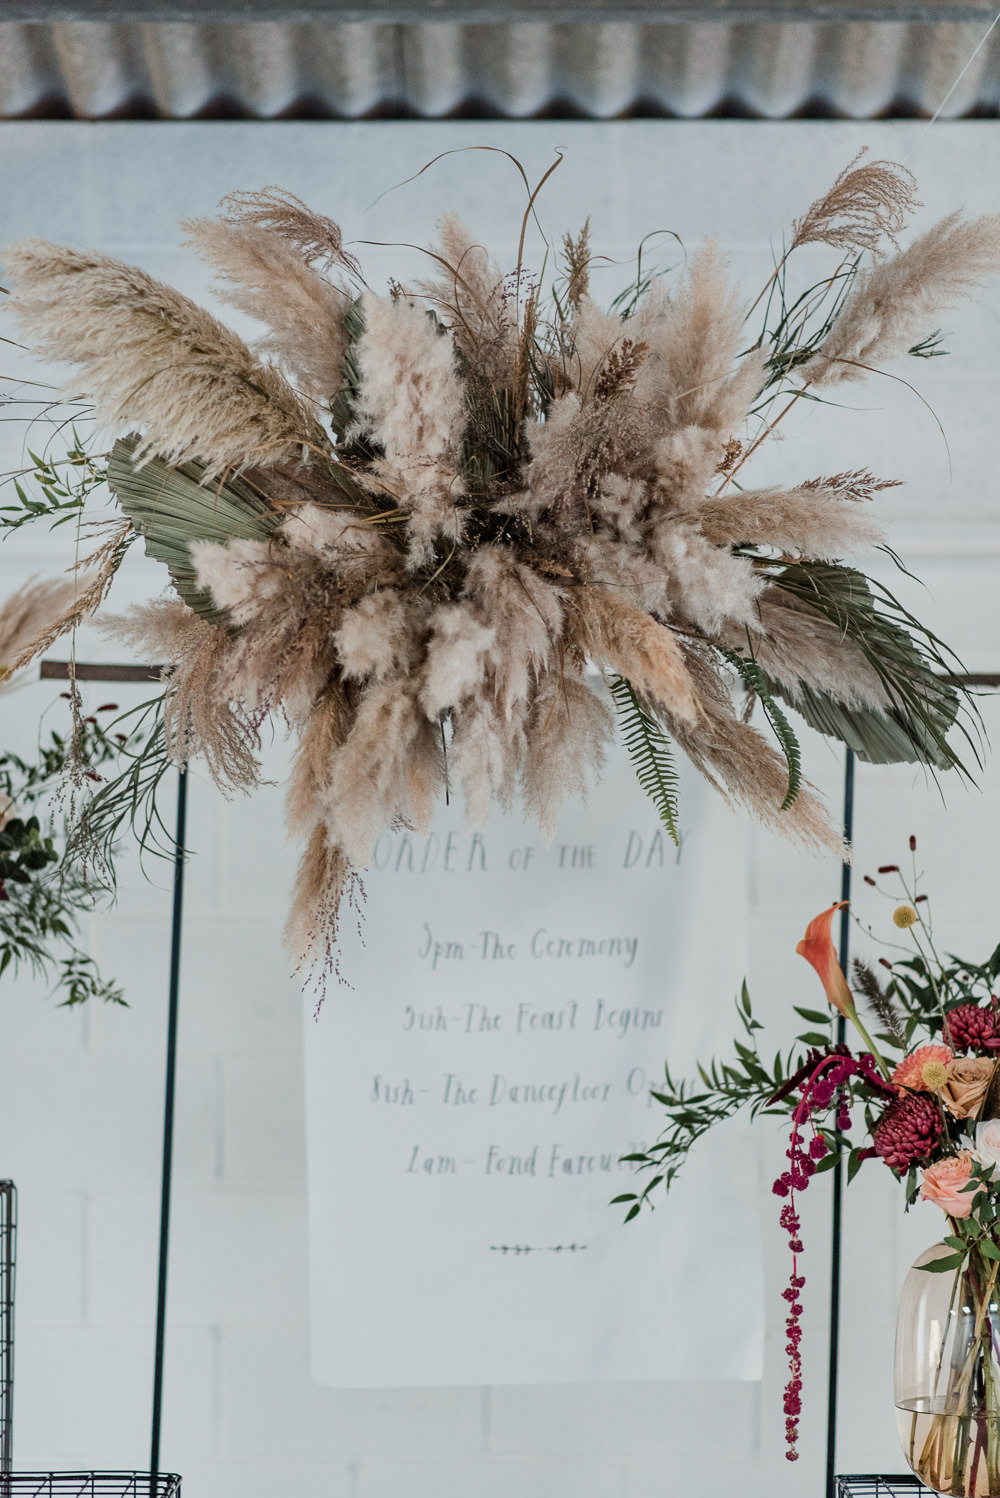 Backdrop Ceremony Aisle Wire Flowers Pampas Grass Decor Cloud Installation Floral 1970 Retro Mid Century Wedding Ideas Laura Martha Photography